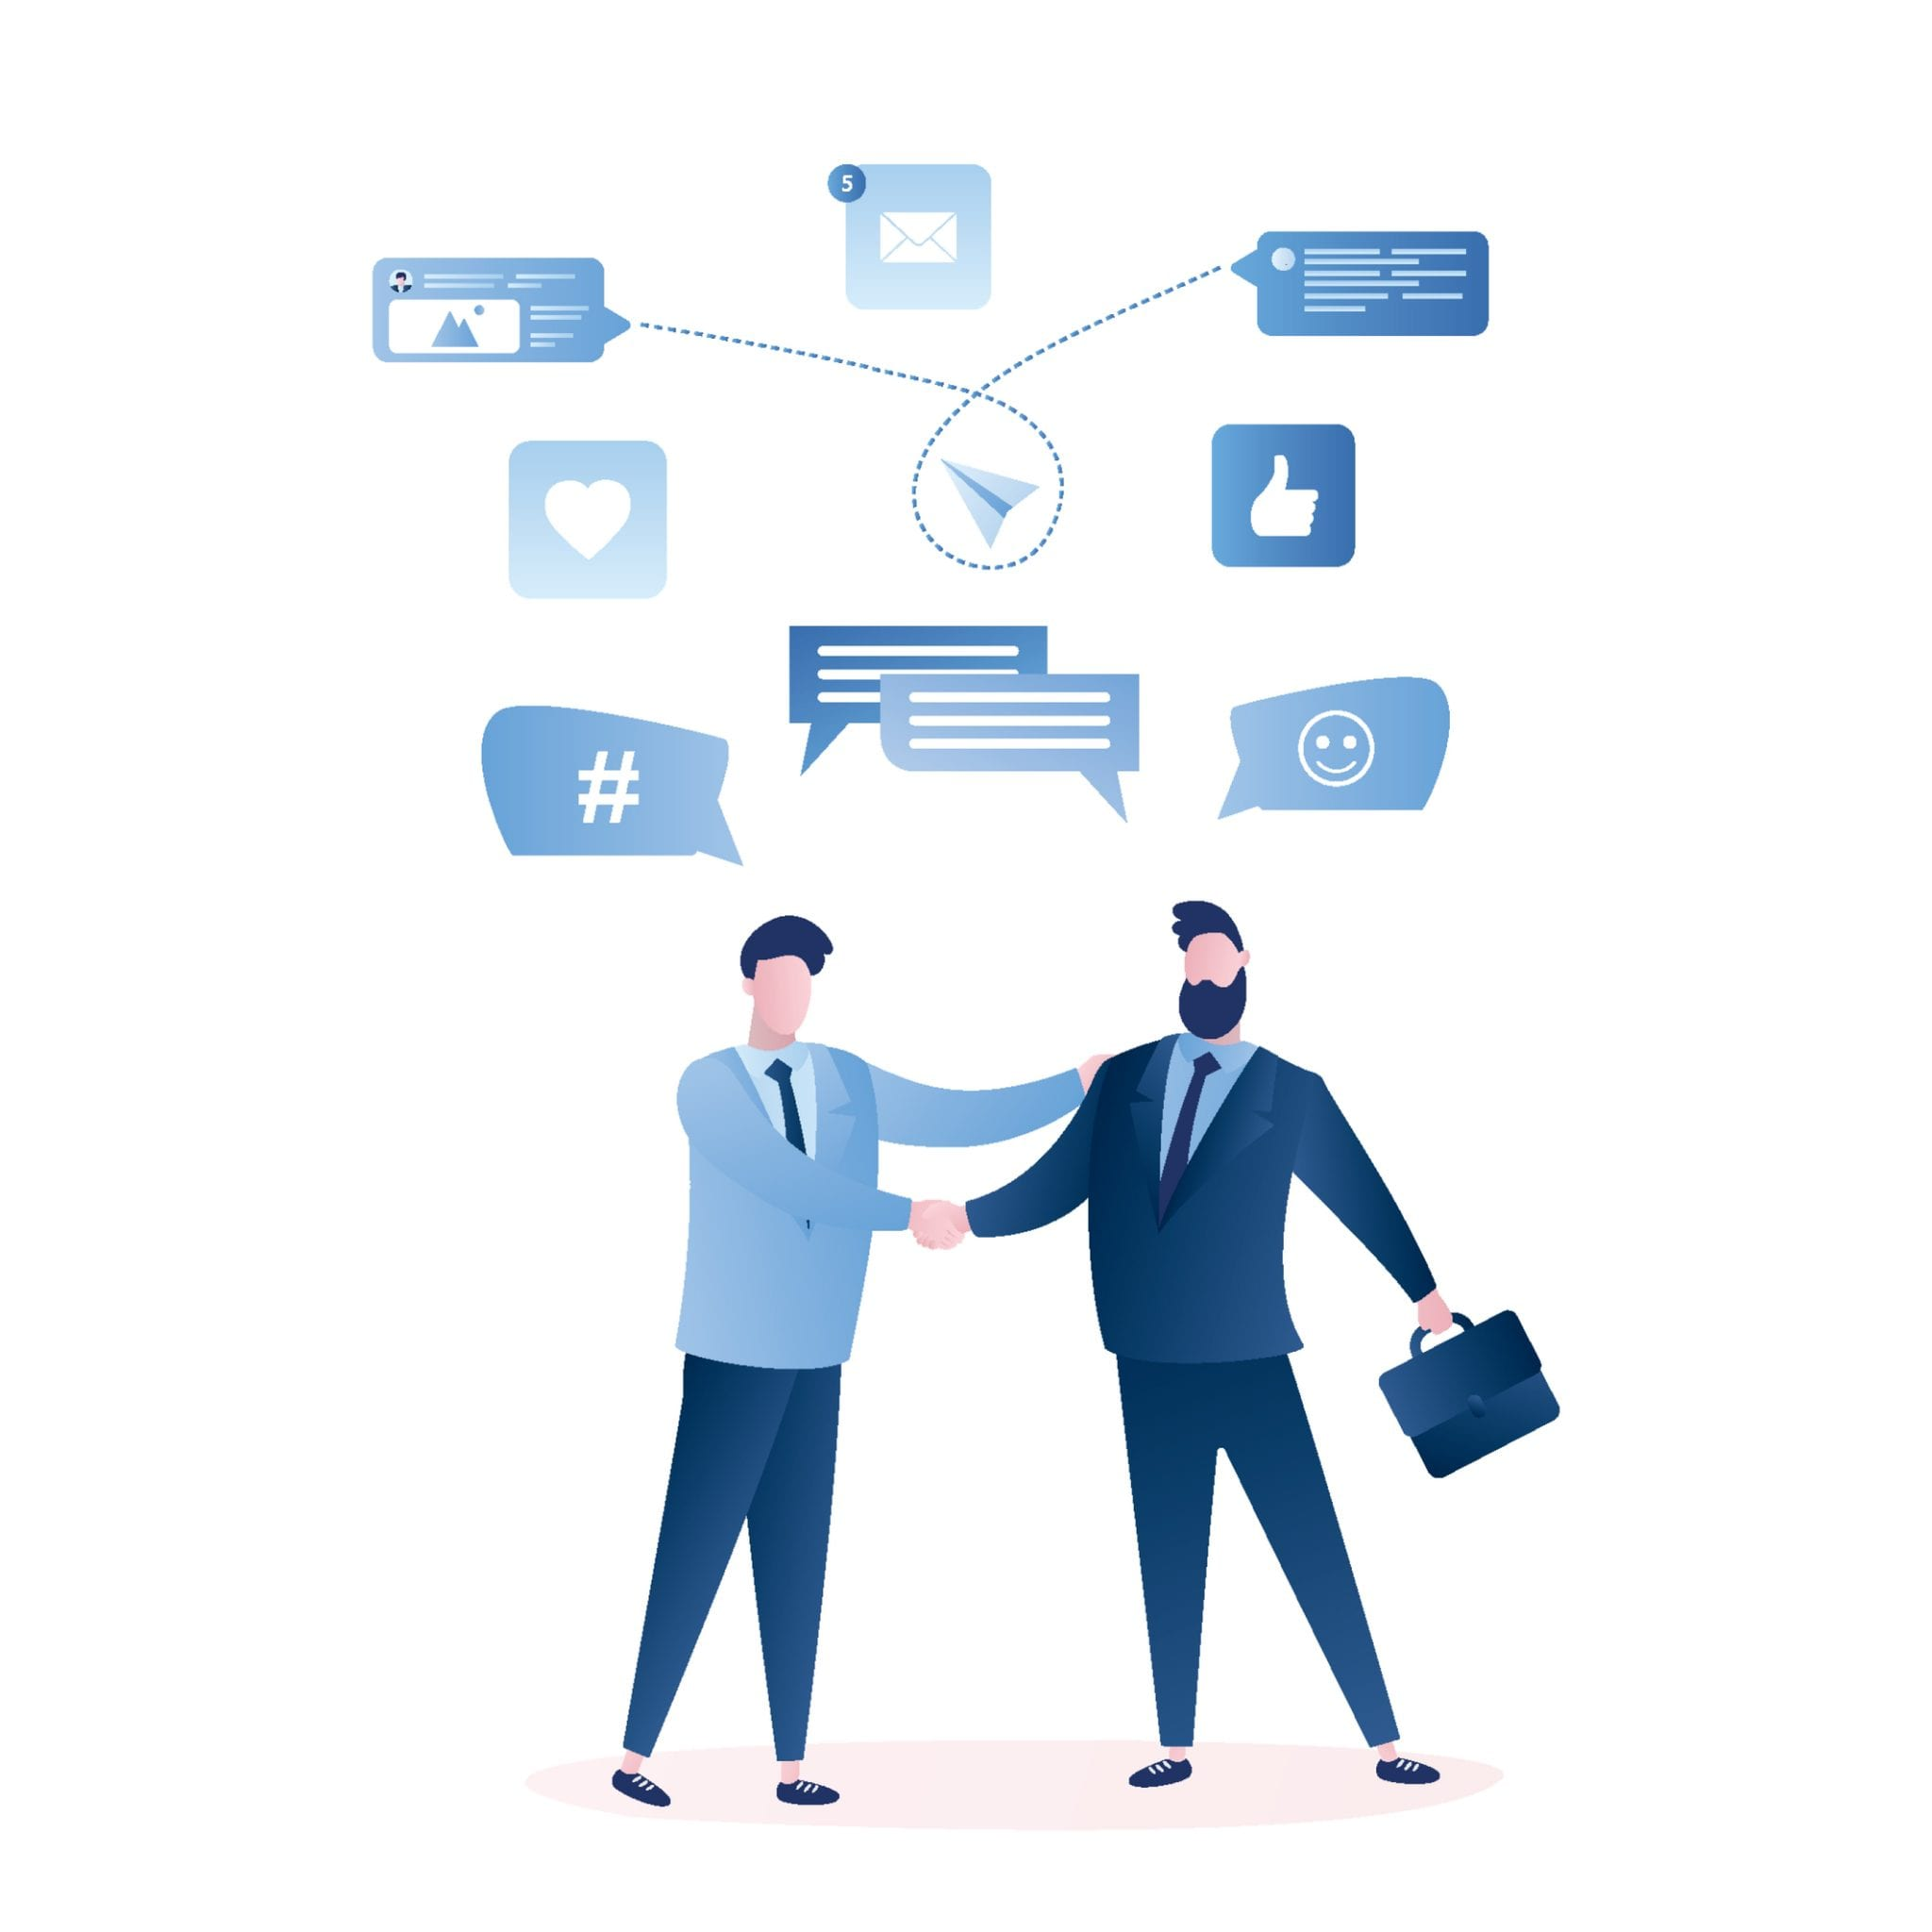 Businessmen Handshake, Successful Business Negotiations and Agreement Concept, Male Characters and Signs Isolated on White Background. Trendy Style Vector Illustration.